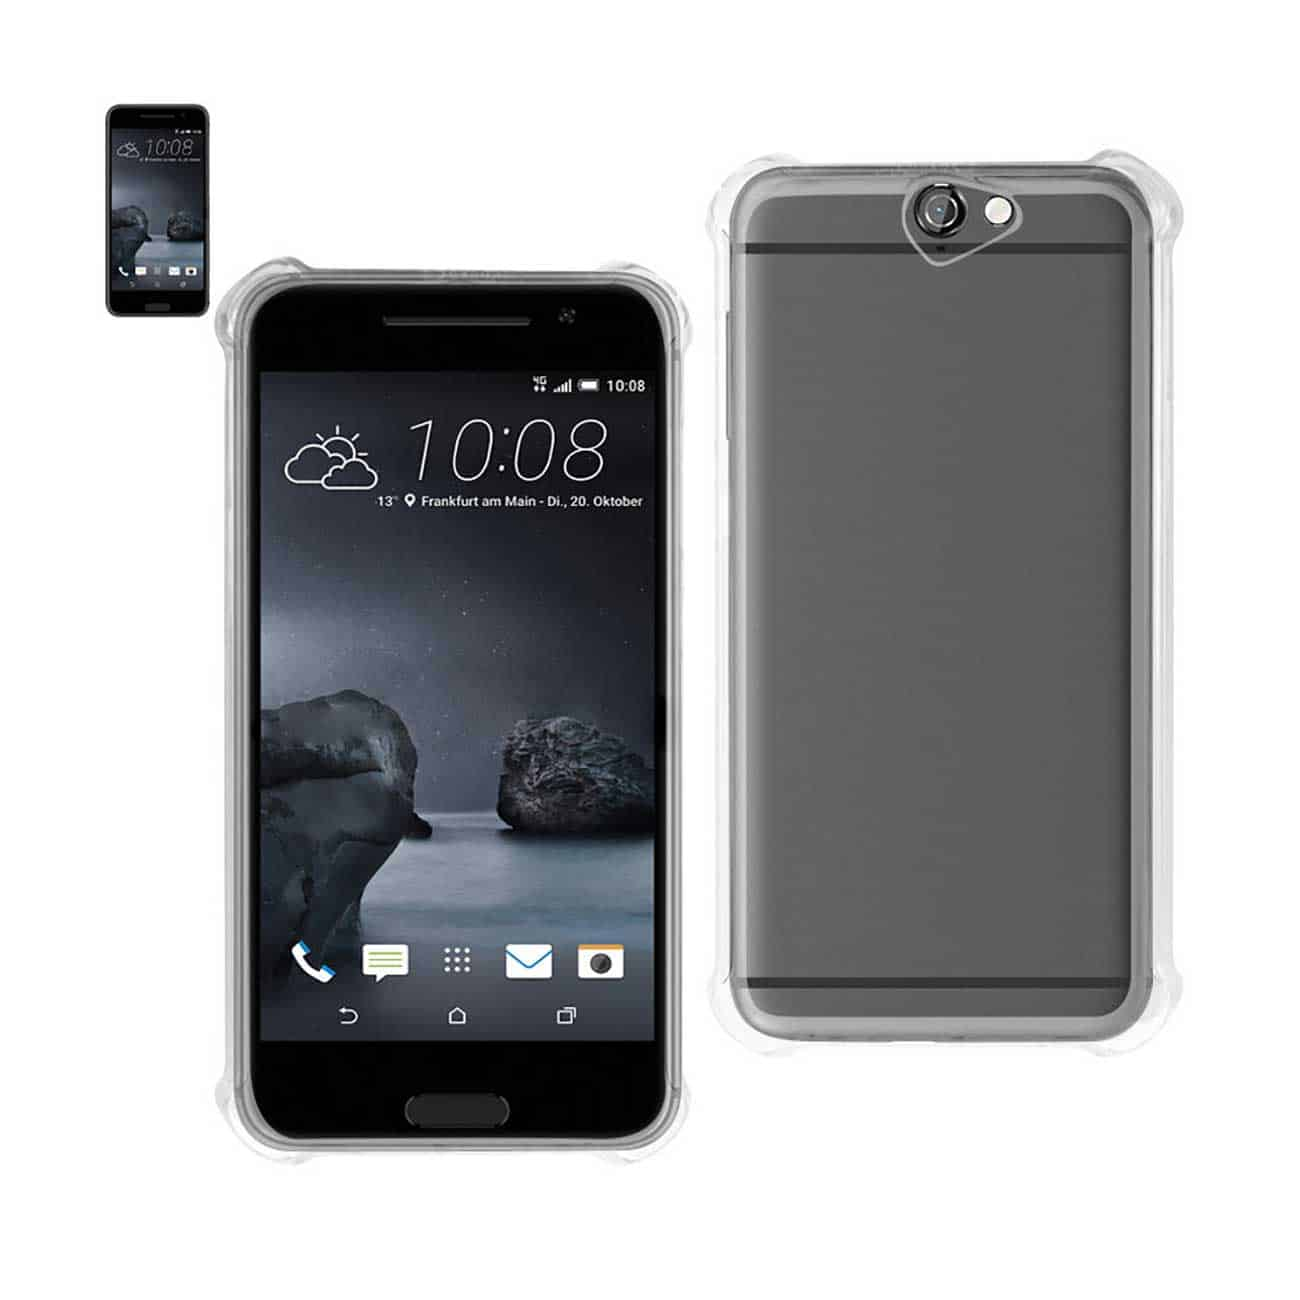 HTC ONE A9 MIRROR EFFECT CASE WITH AIR CUSHION PROTECTION IN CLEAR